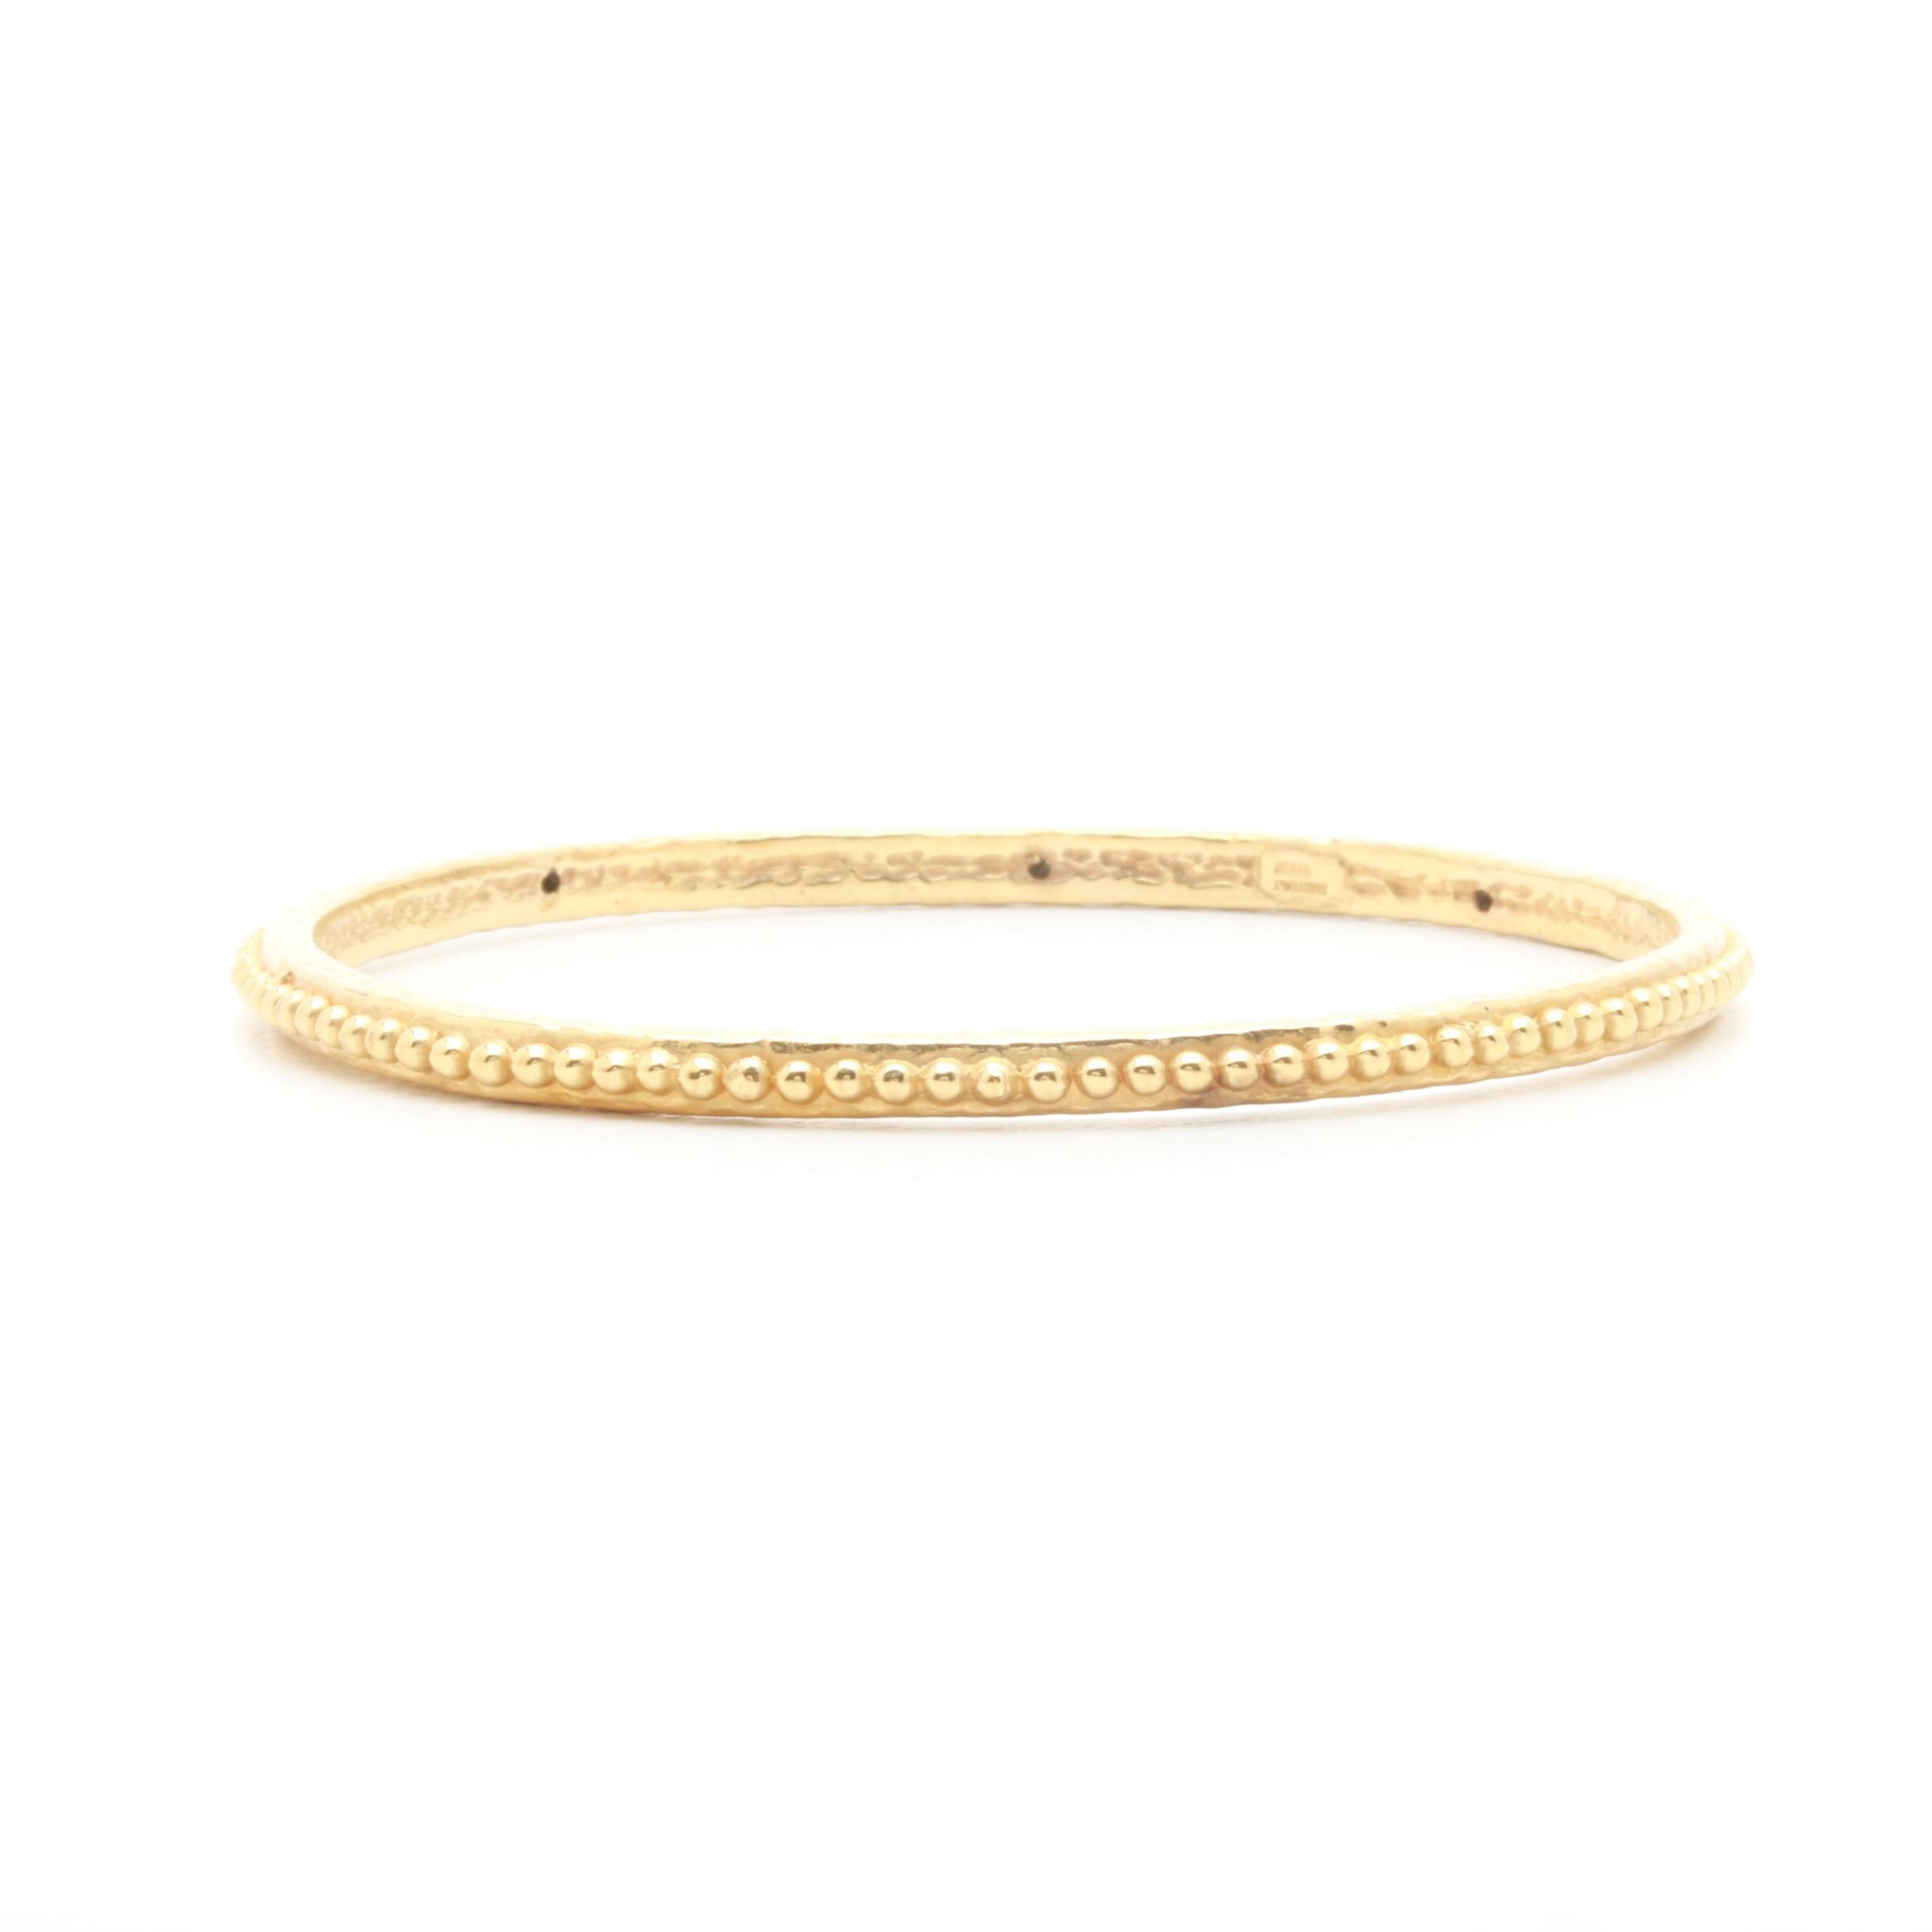 Golden Clef International 14K Yellow Gold Bangle Bracelet